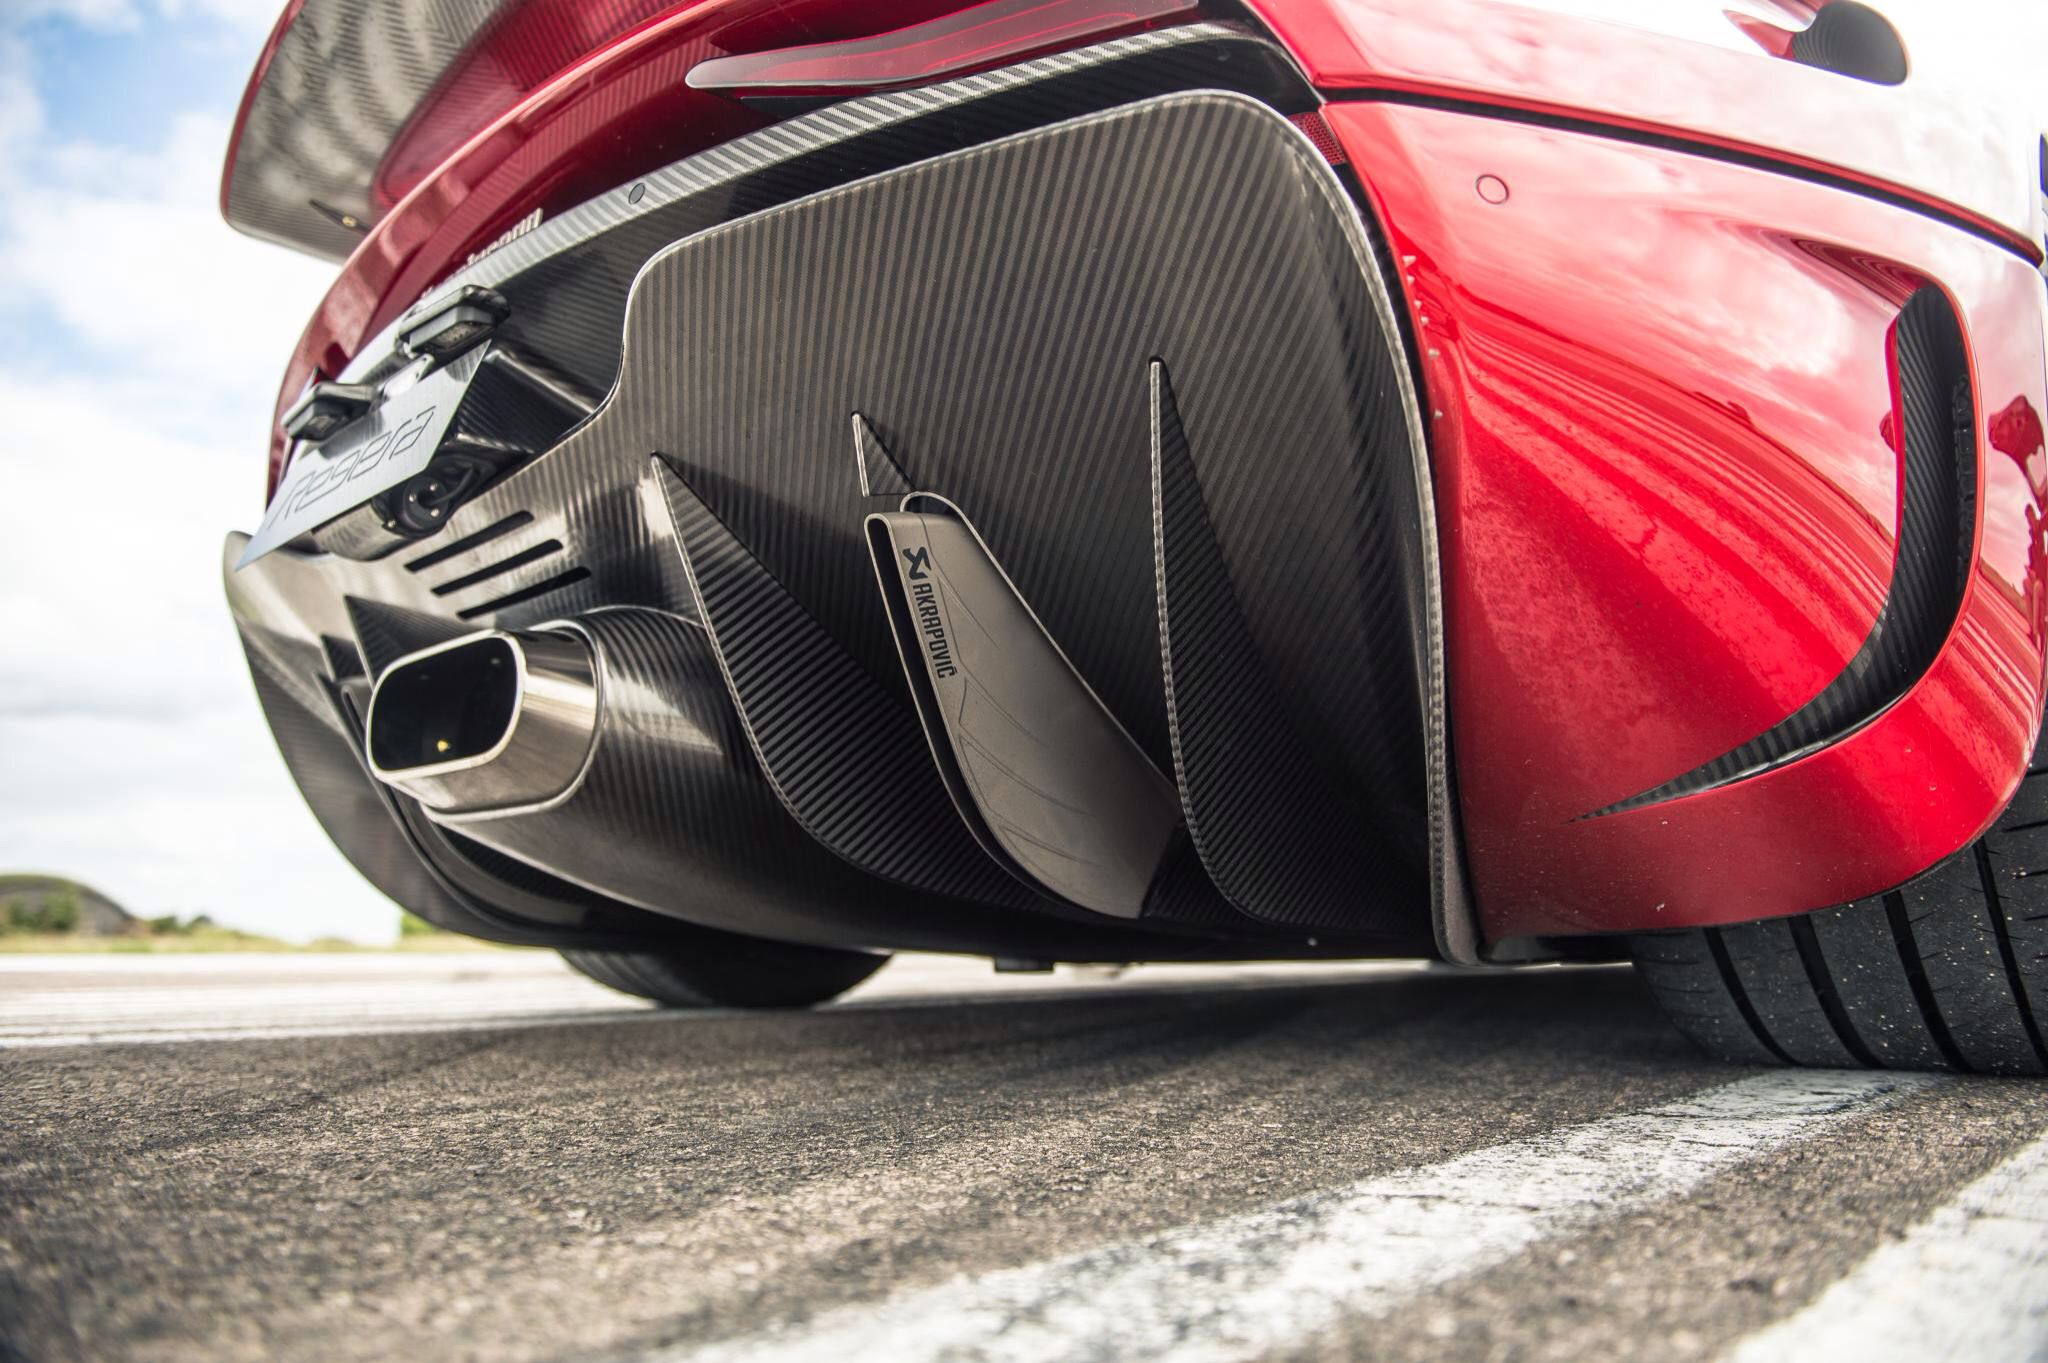 Regera Exhaust And Diffuser Corvette C4 Super Cars Automotive Art